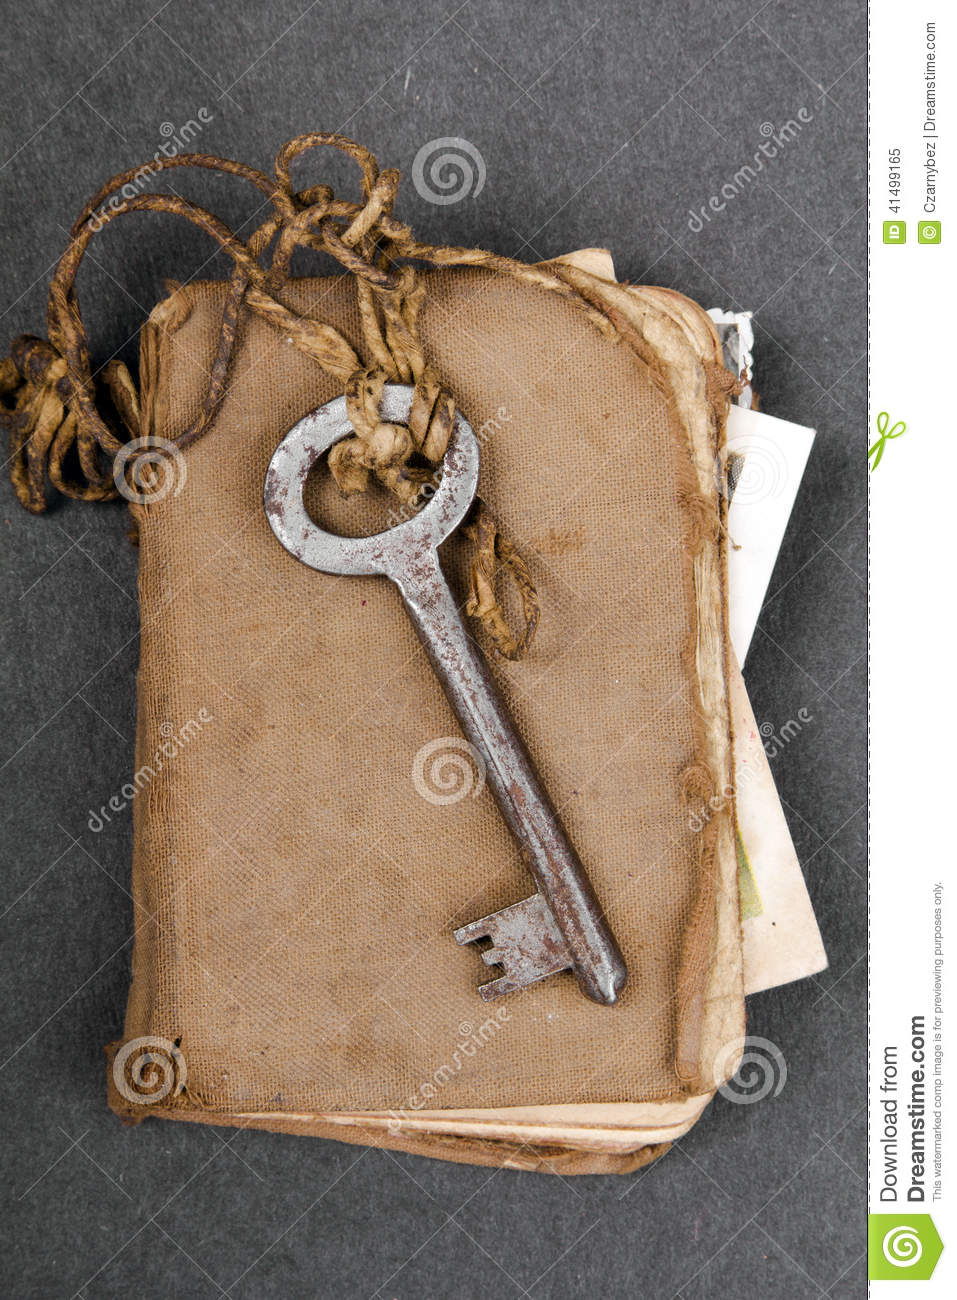 Rusty Key And Old Book On Dark Background Stock Image ...